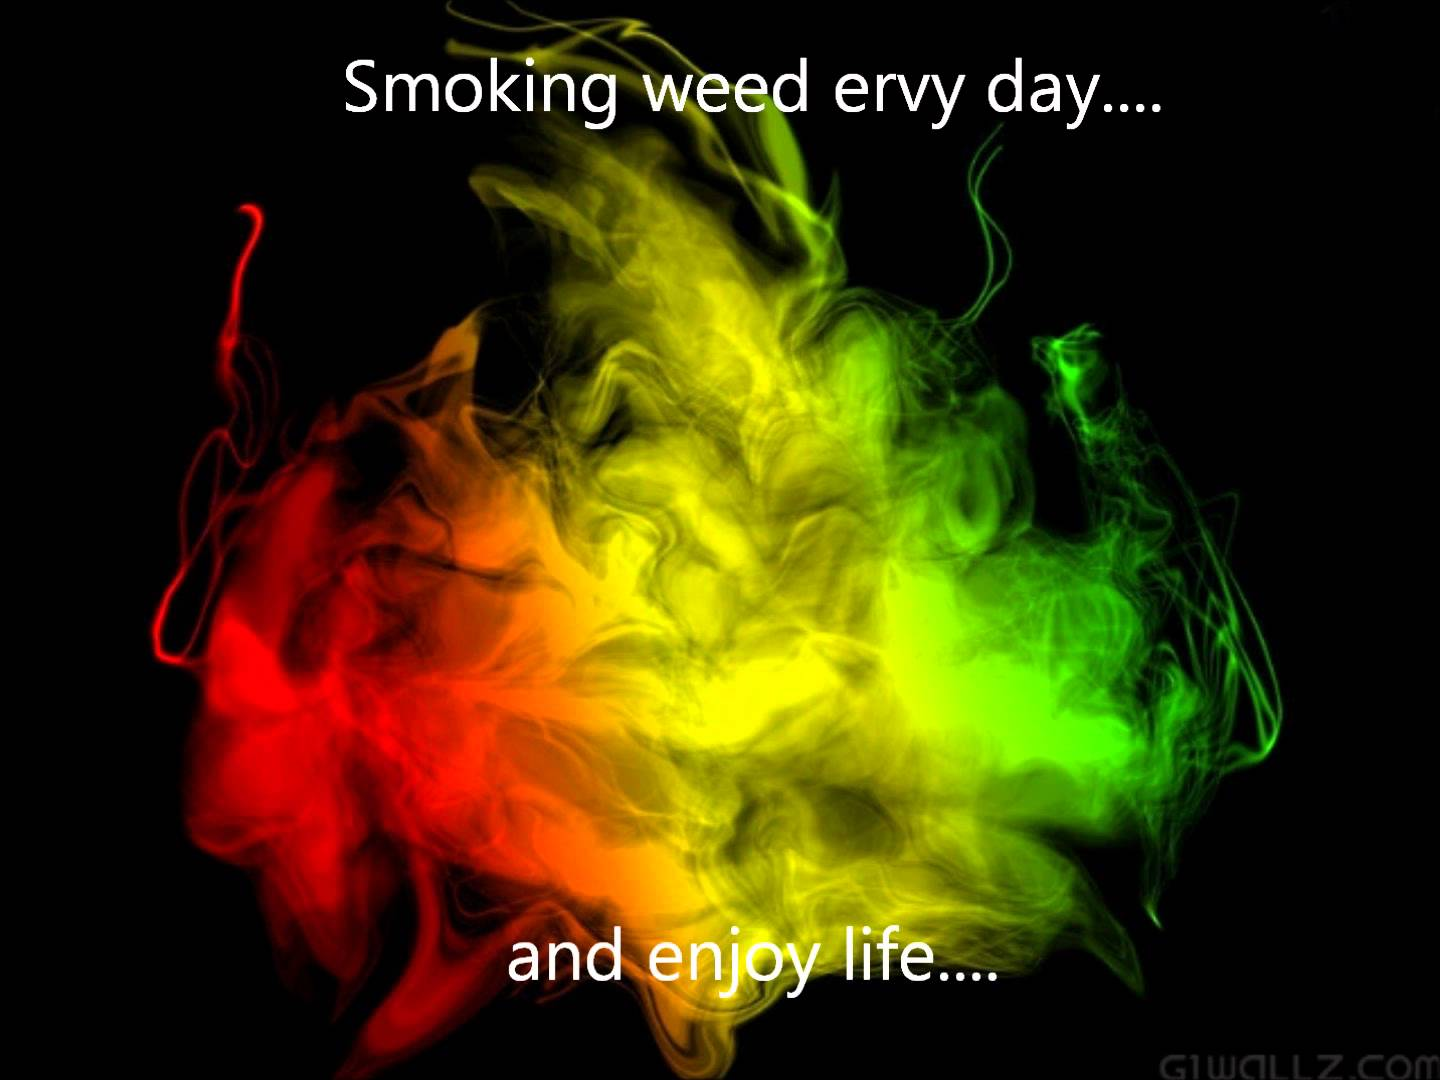 Best-Song-To-Smoke-Weed-On-It-1080p-wallpaper-wp3803139